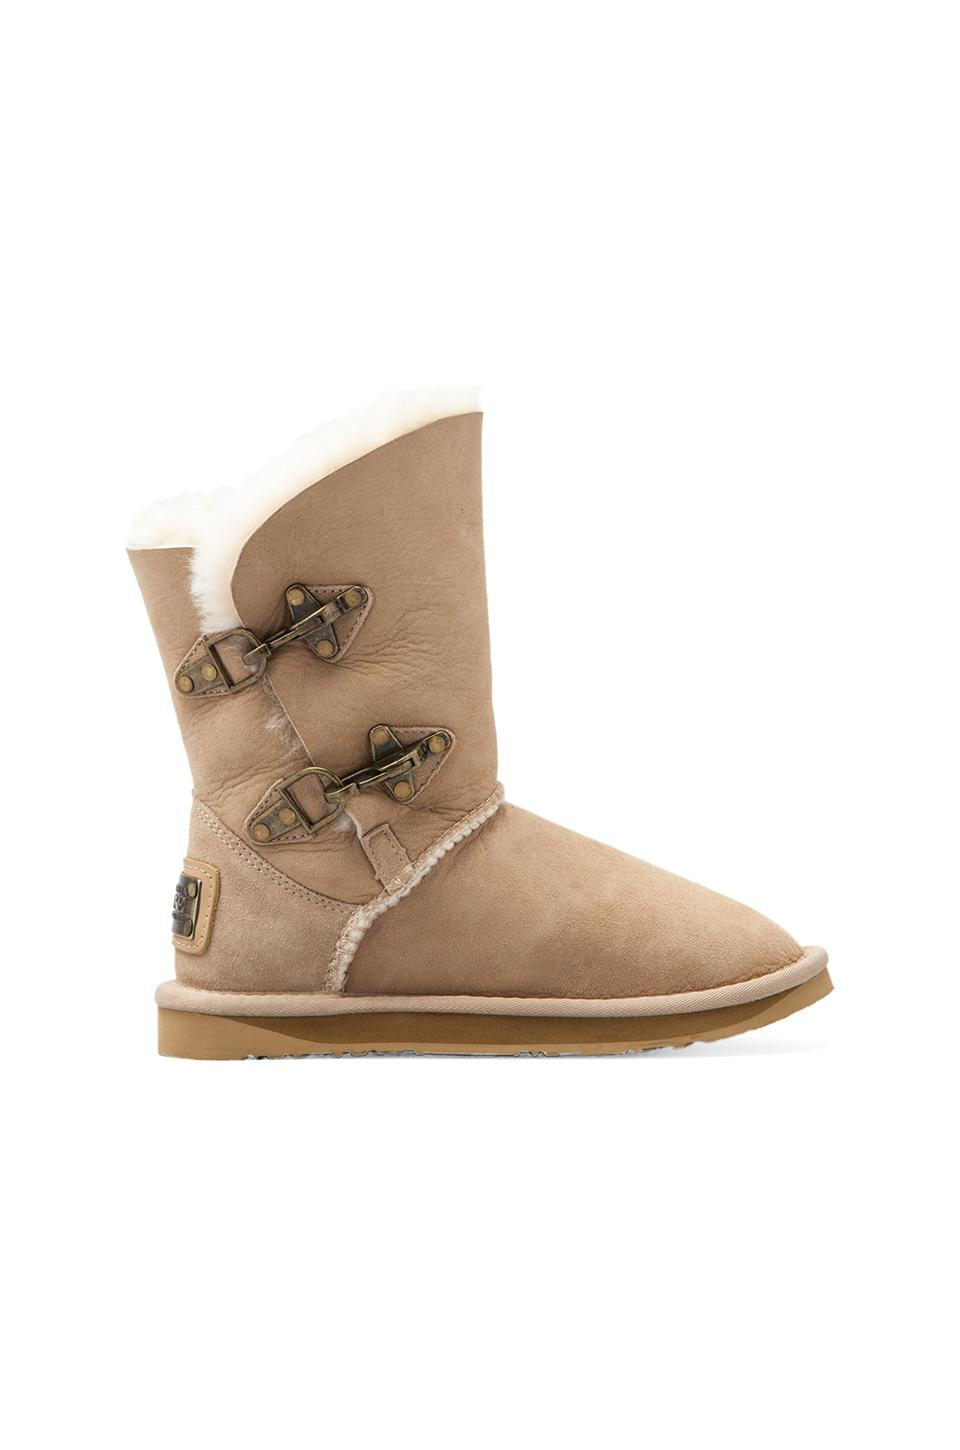 Australia Luxe Collective Renegade Short Boot with Sheep Shearling in Sand